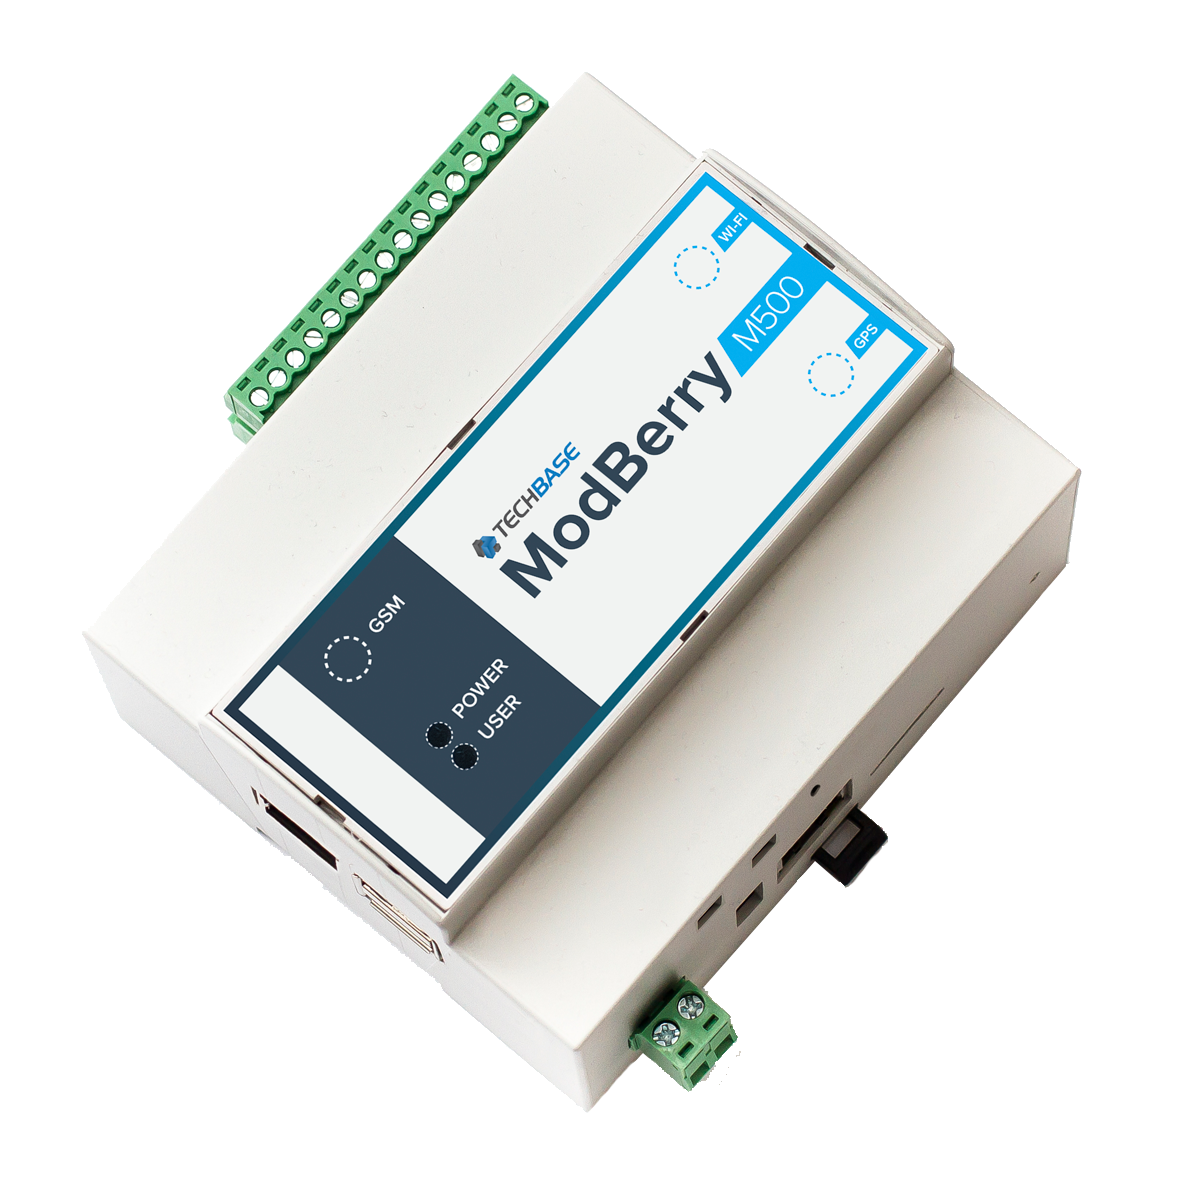 ModBerry's M500 Industrial IoT Computer Gets an Upgrade with